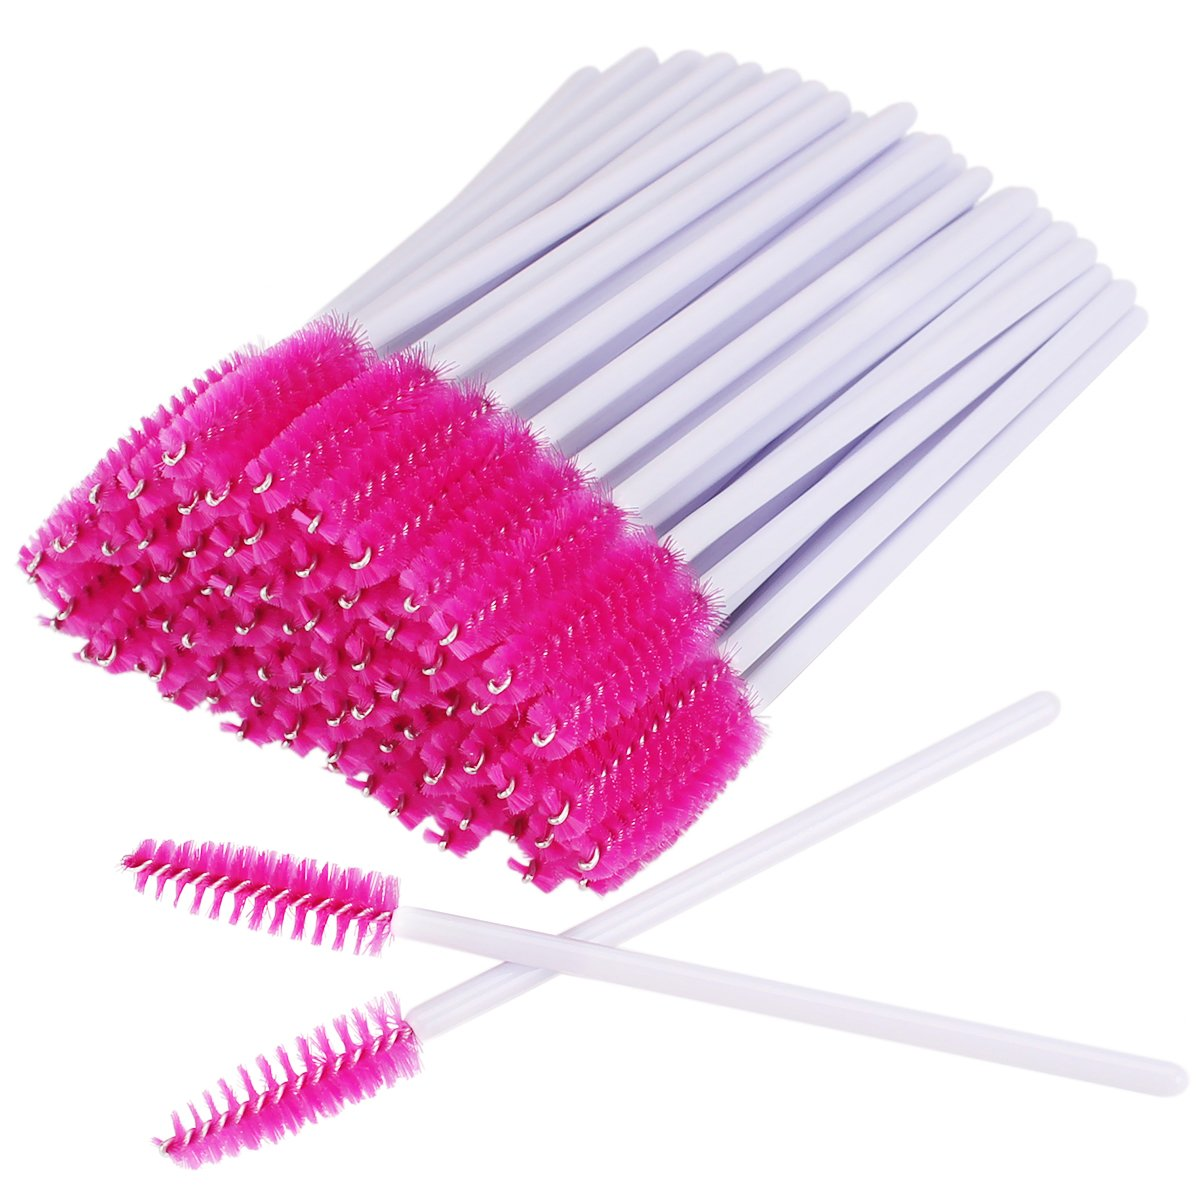 AKStore 100 PCS Disposable Eyelash Brushes Mascara Wands Eye Lash Eyebrow Applicator Cosmetic Makeup Brush Tool Kits (White-Rose)